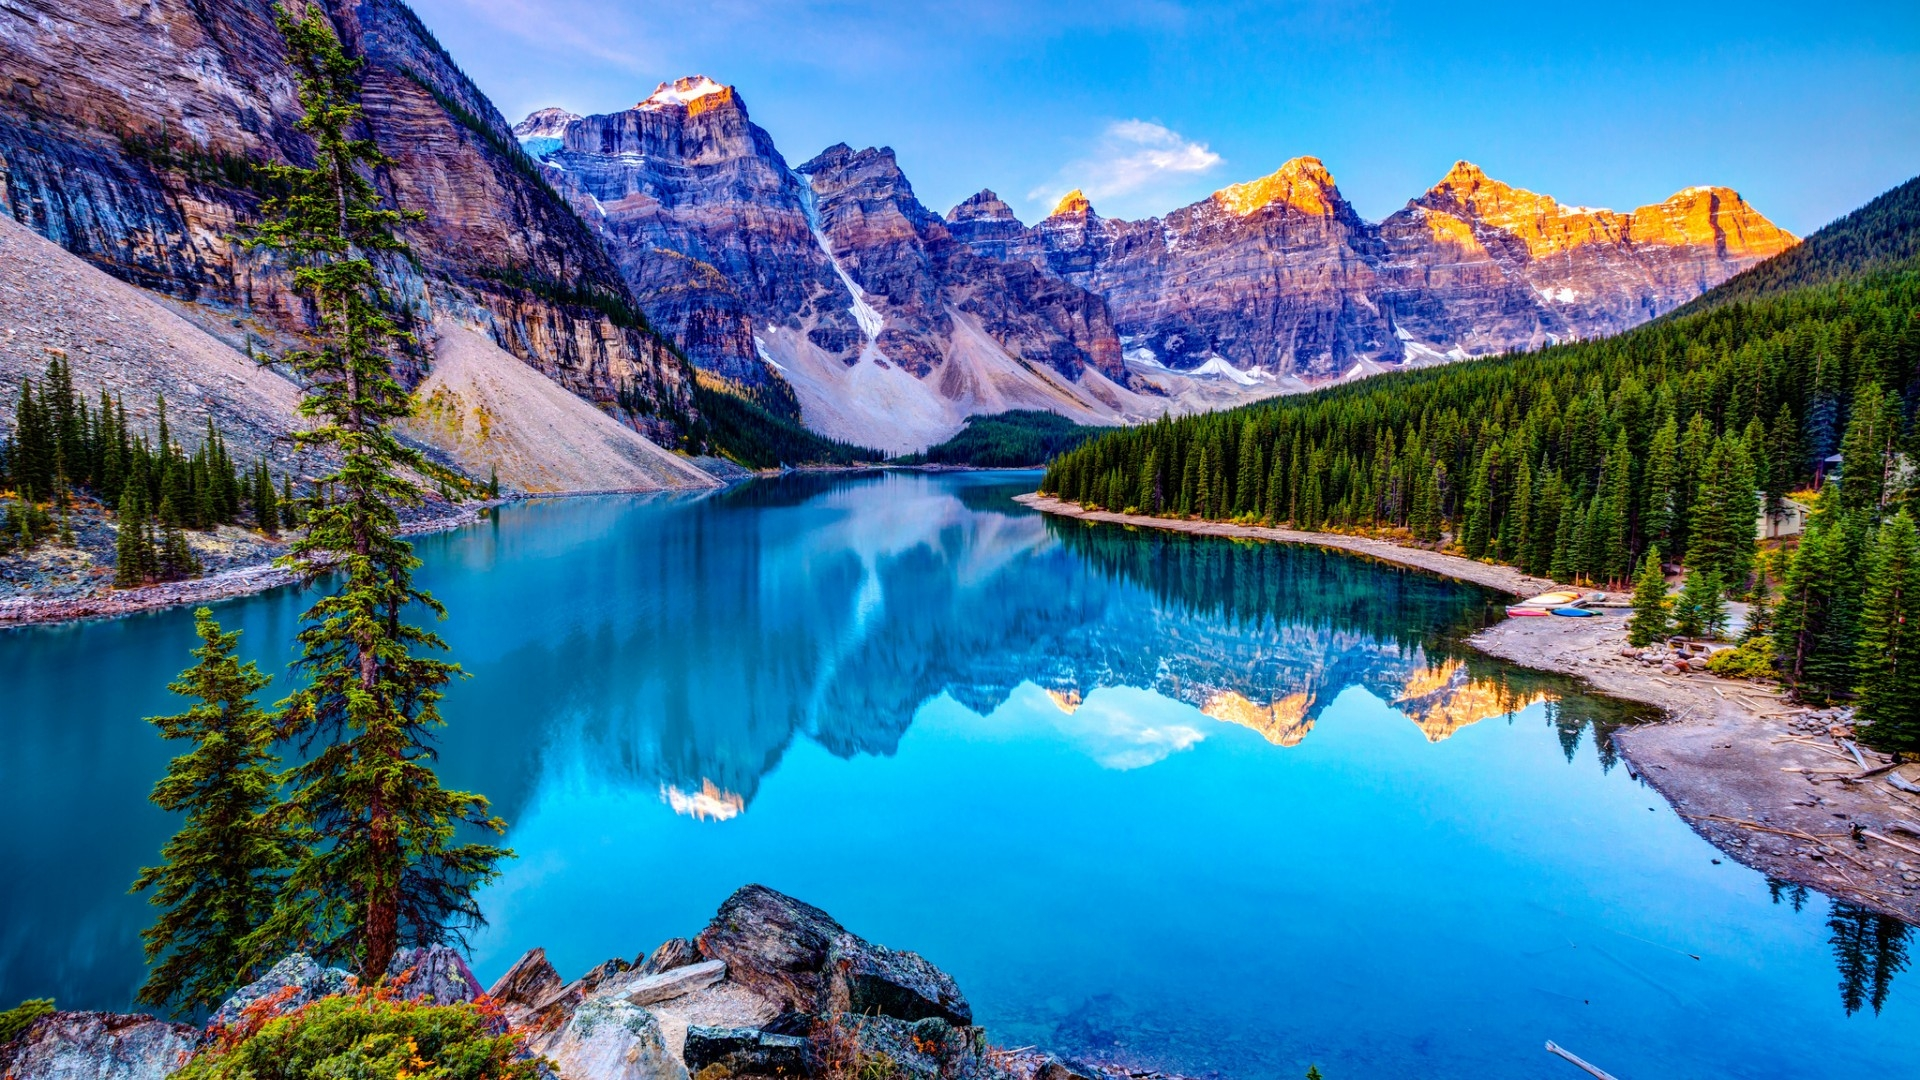 hd nature background desktop wallpapers amazing natural lake canada photographer water nice collection scenery ultra